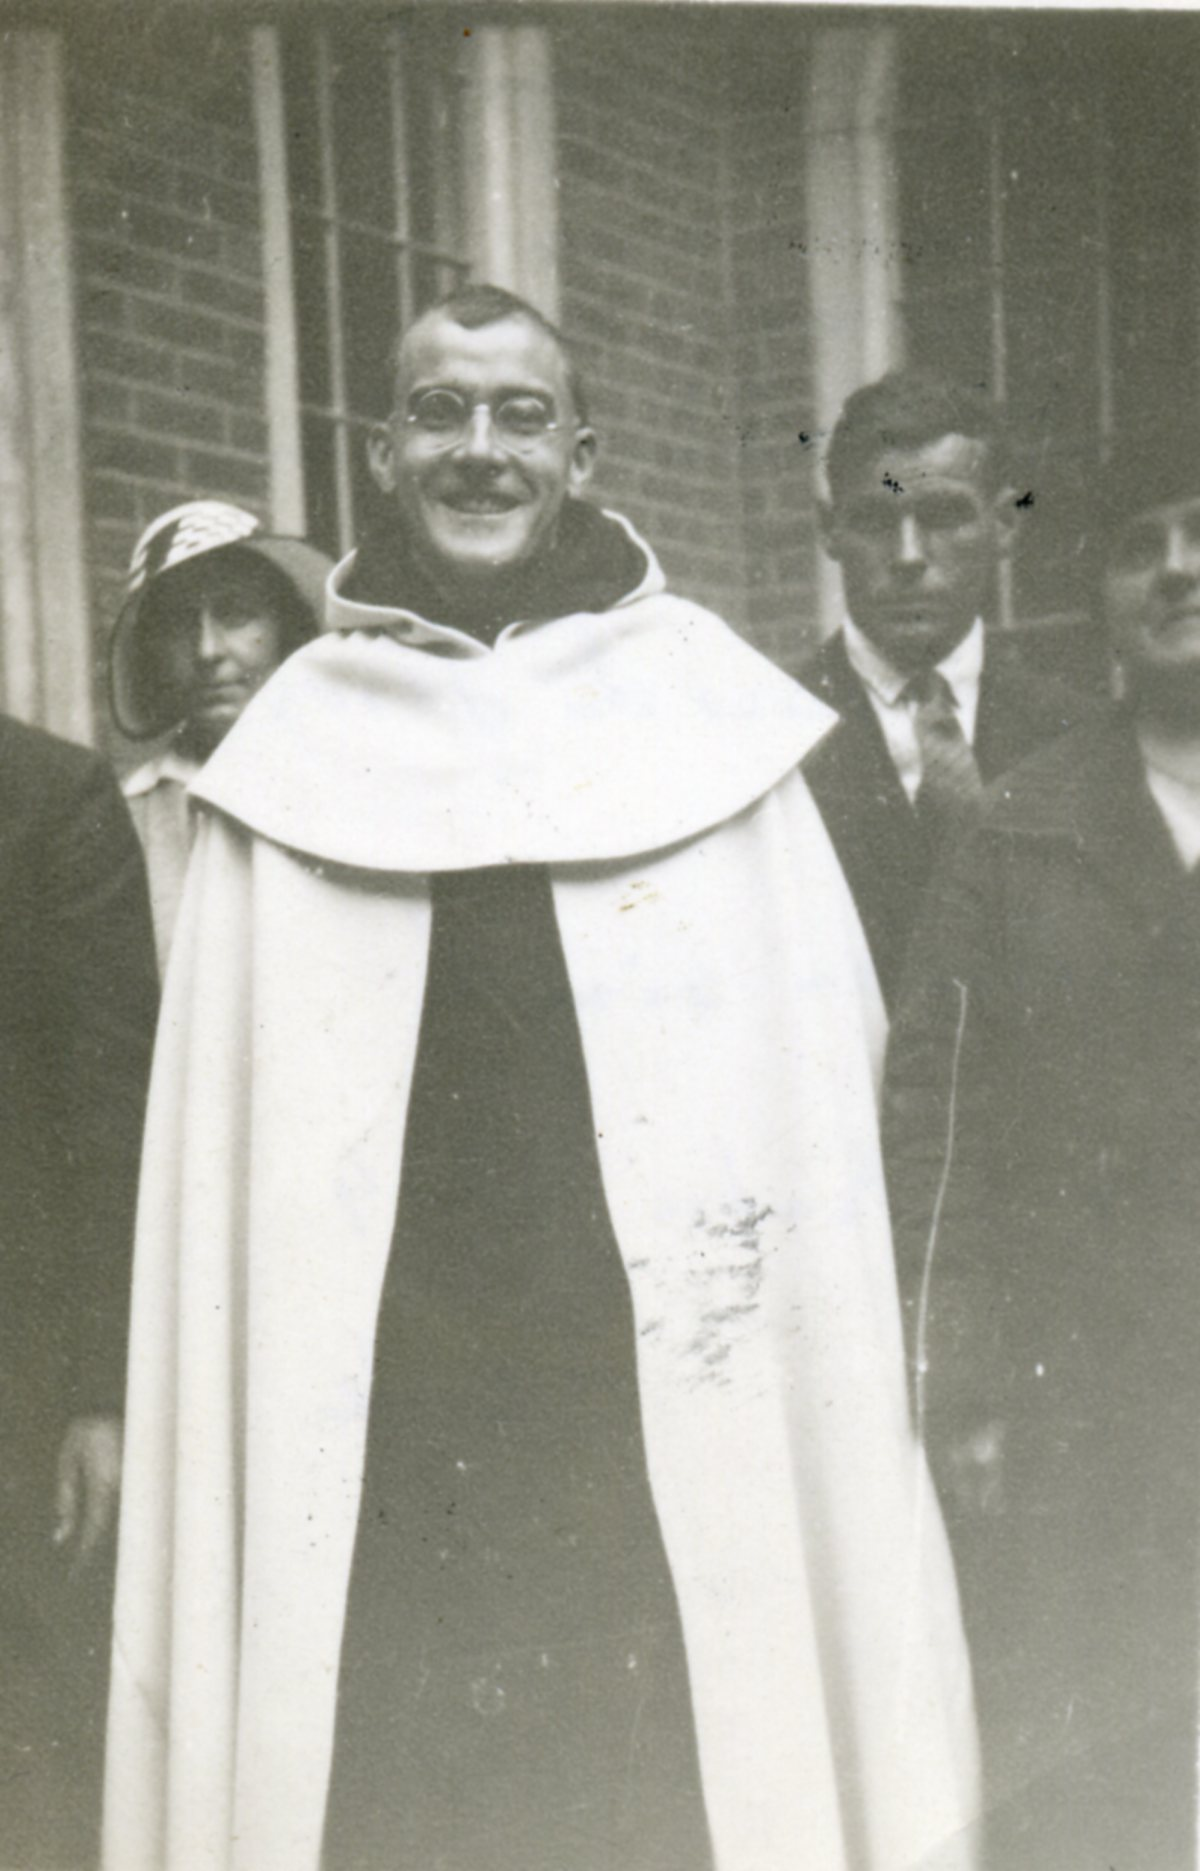 Lille, September 15, 1932 - 